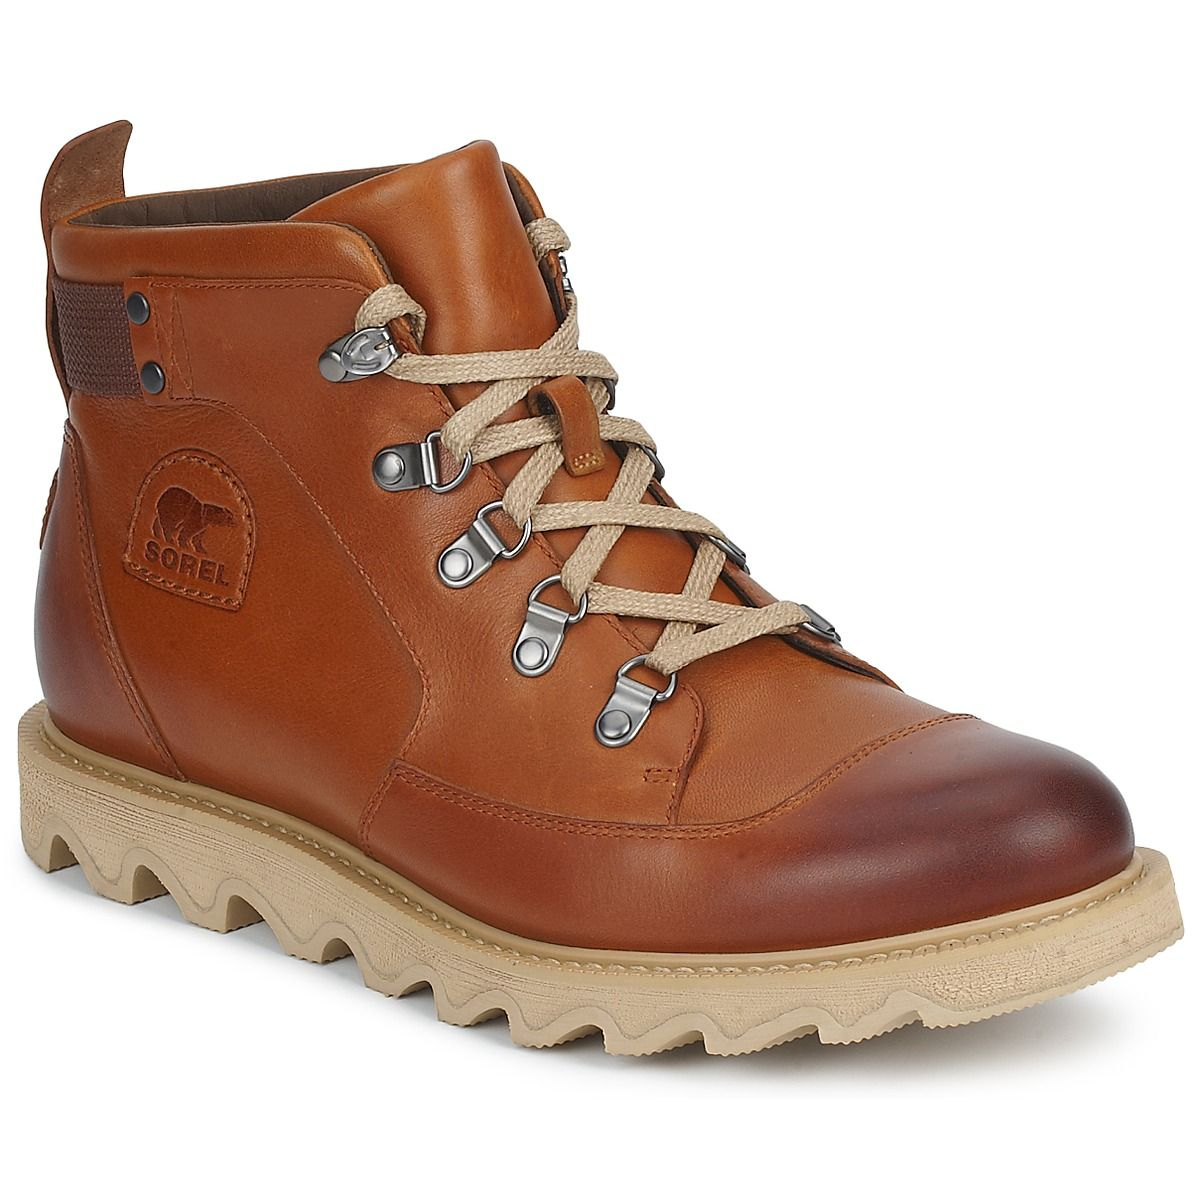 529431fcfab Ugg Men Agnar Boots Shoes Waterproof Grizzly Brown Tan - Black Size ...